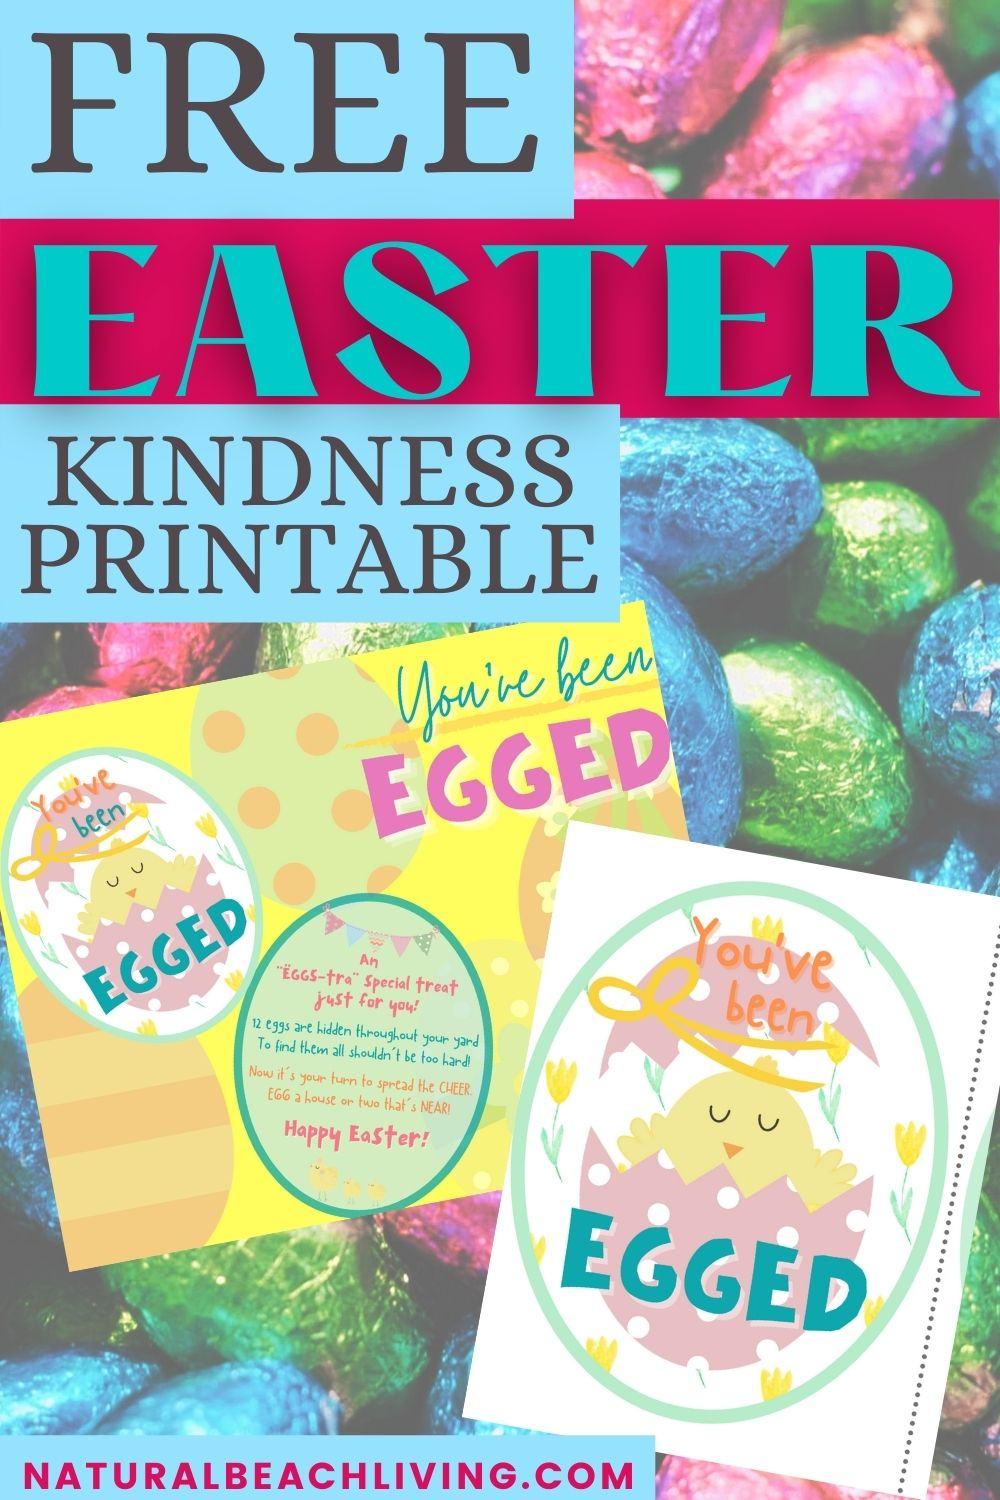 Spread a little extra kindness and cheer to your friends and neighbors this Easter with this great Random Acts of Kindness Activity. Hide Filled Easter Eggs around your neighborhood and use this You've Been Egged Kindness Printable for a fun Easter Surprise.